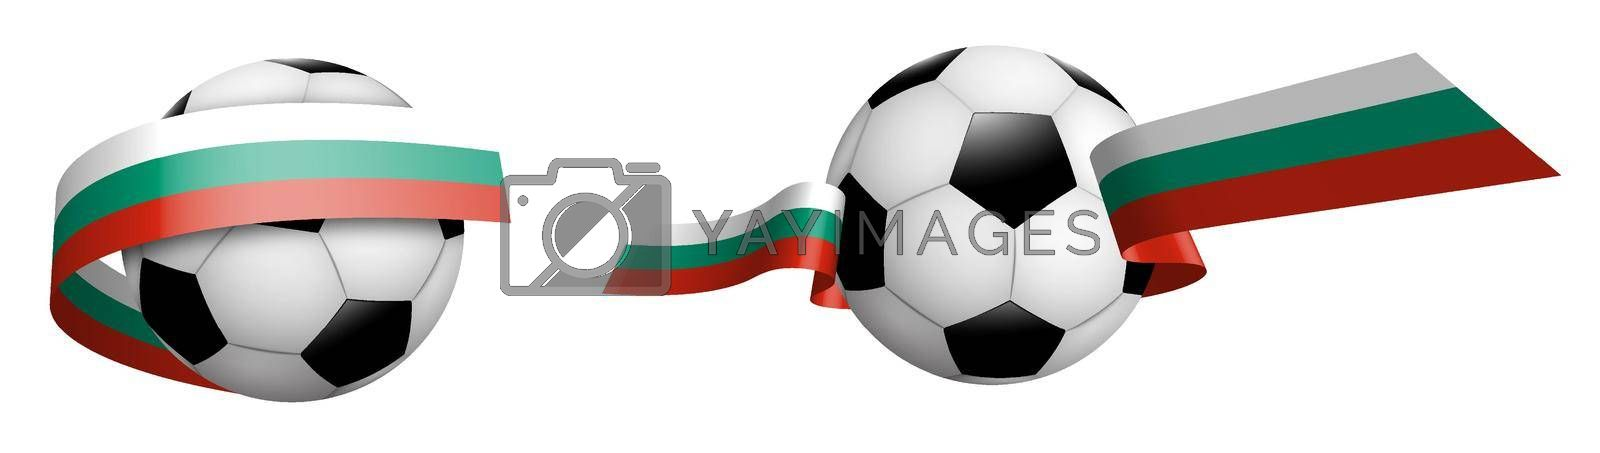 balls for soccer, classic football in ribbons with colors of Bulgaria flag. Design element for football competitions. Bulgarian national team. Isolated vector on white background